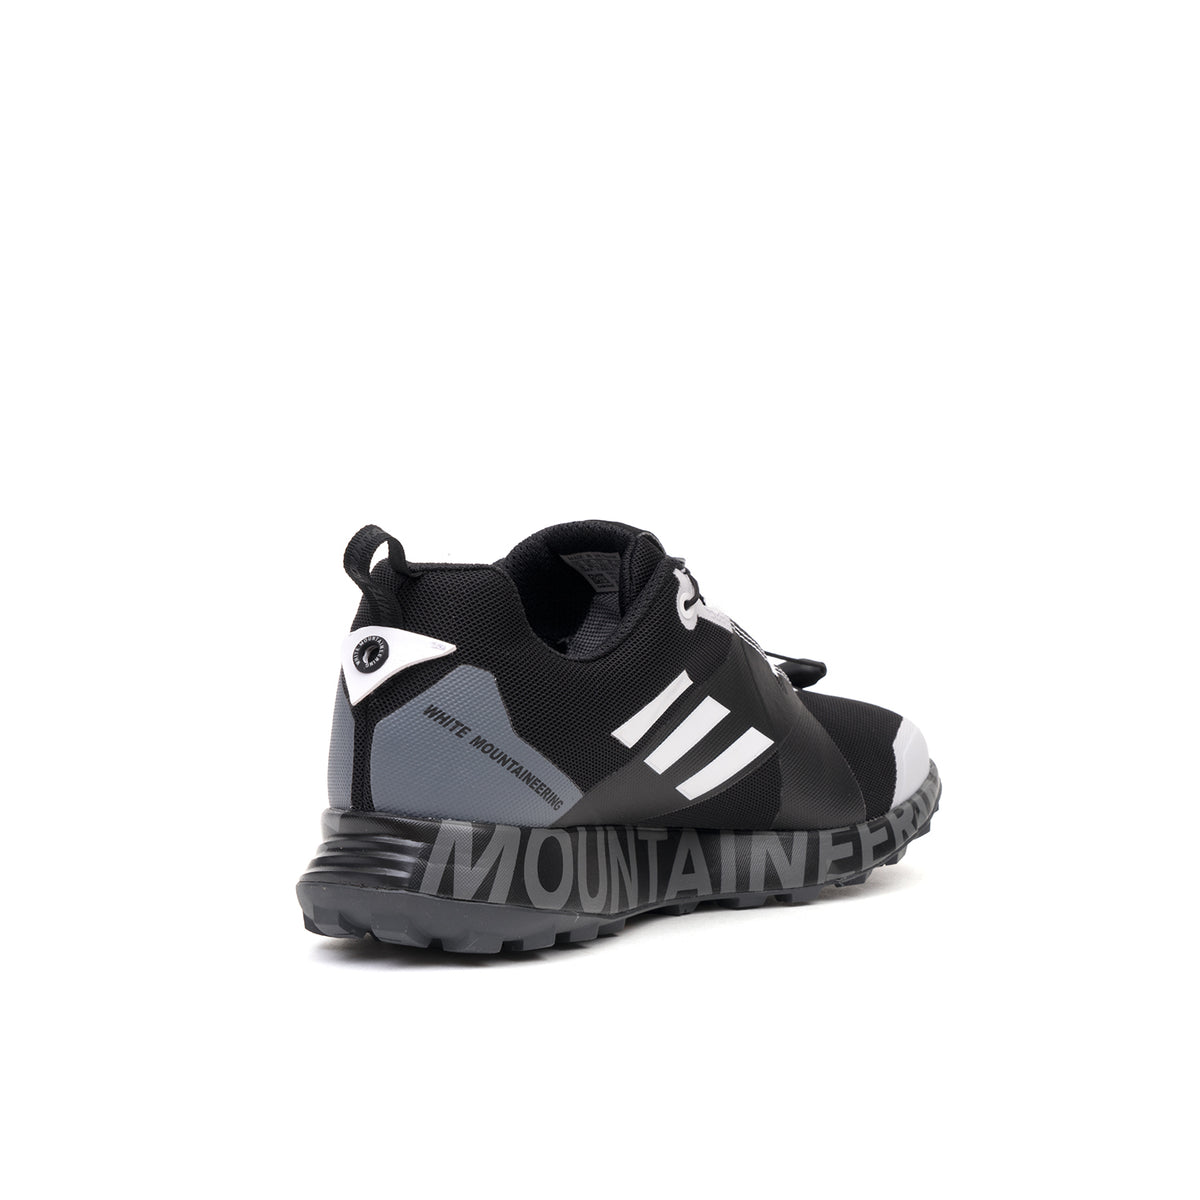 adidas x wit mountaineering terrex two gtx